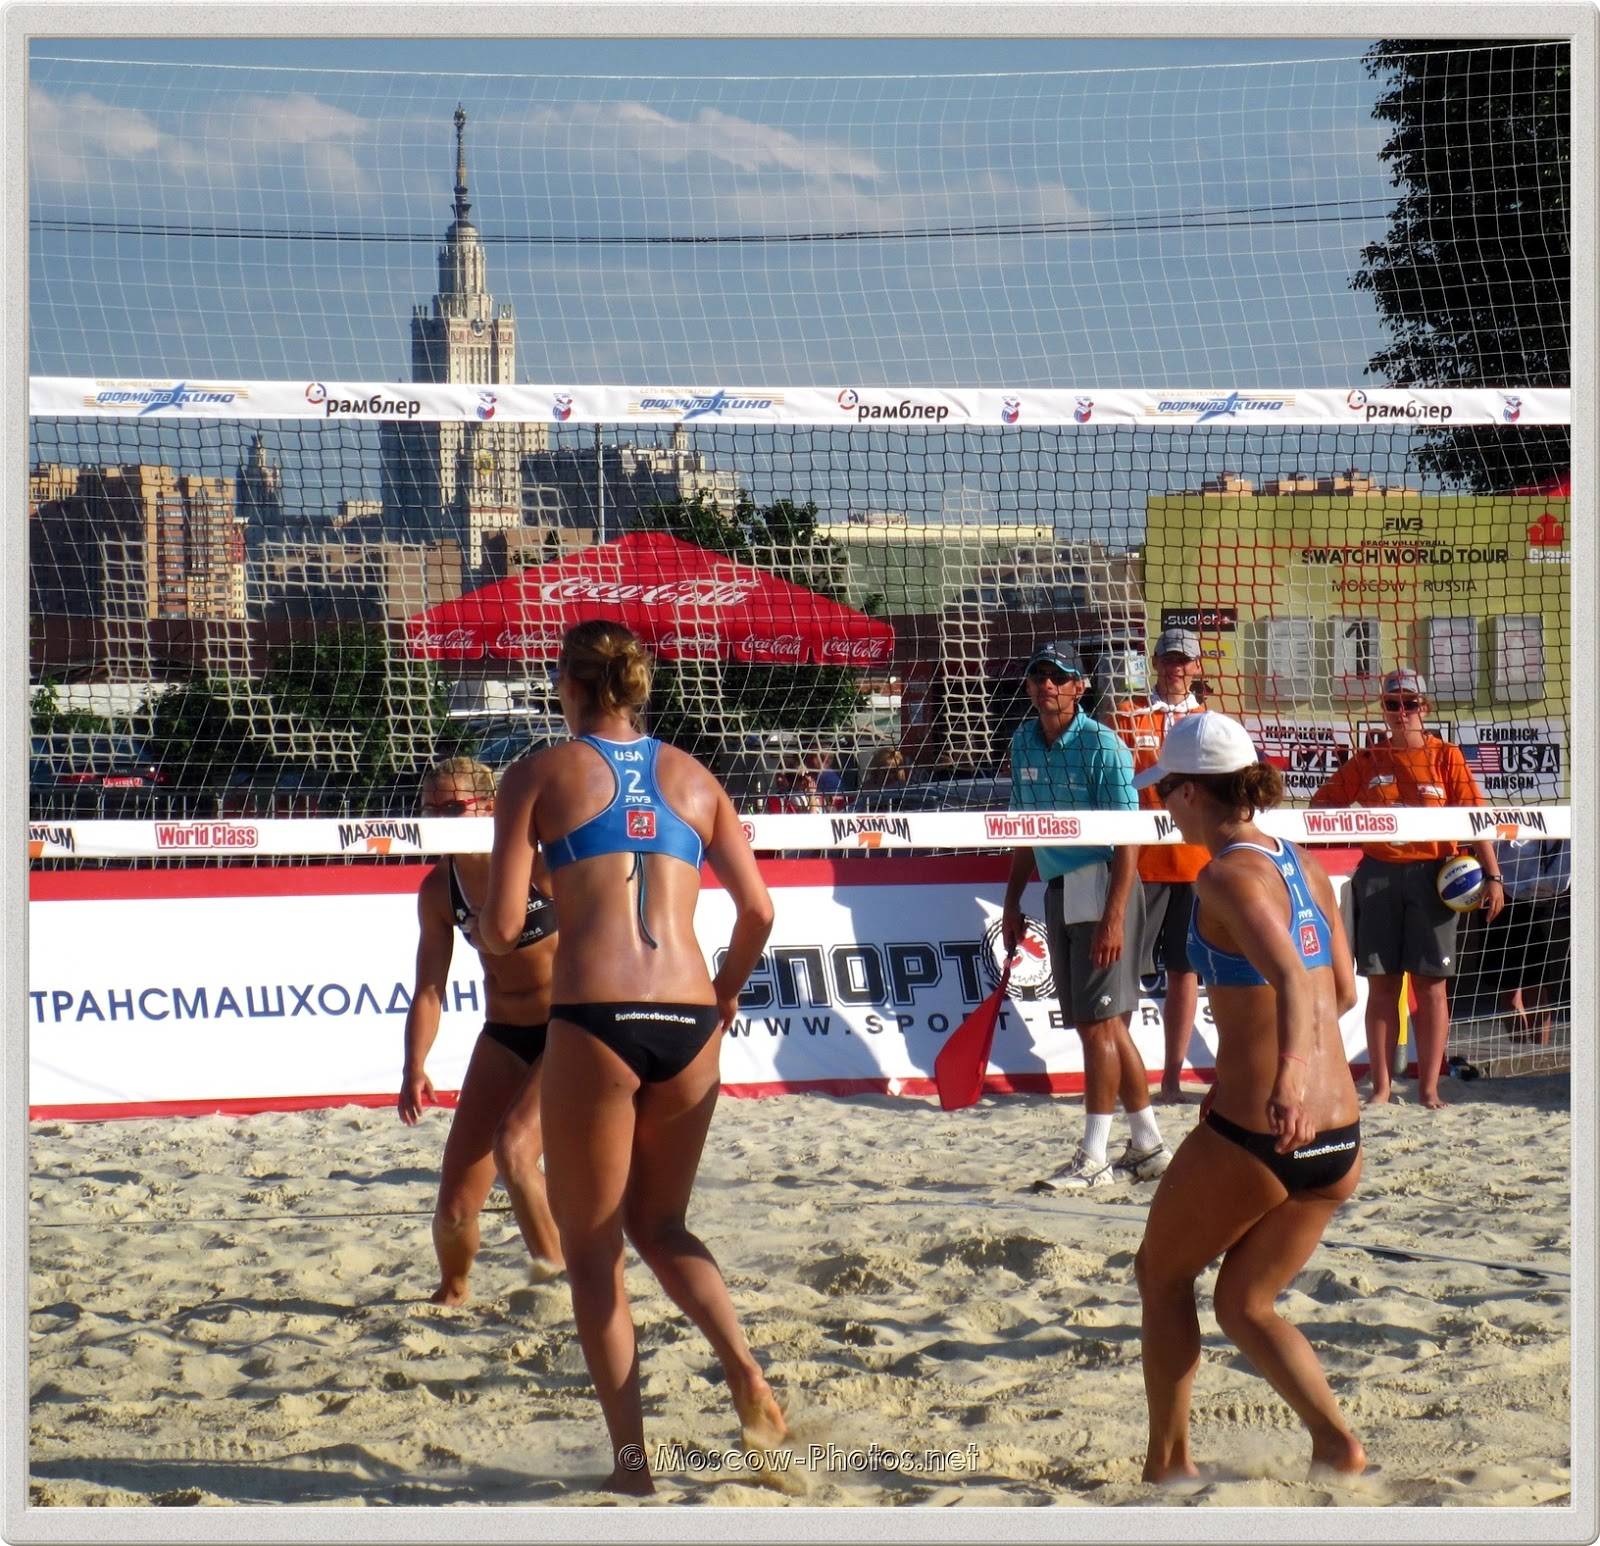 USA Beach Volleyball Players Lauren Fendrick & Brooke Hanson